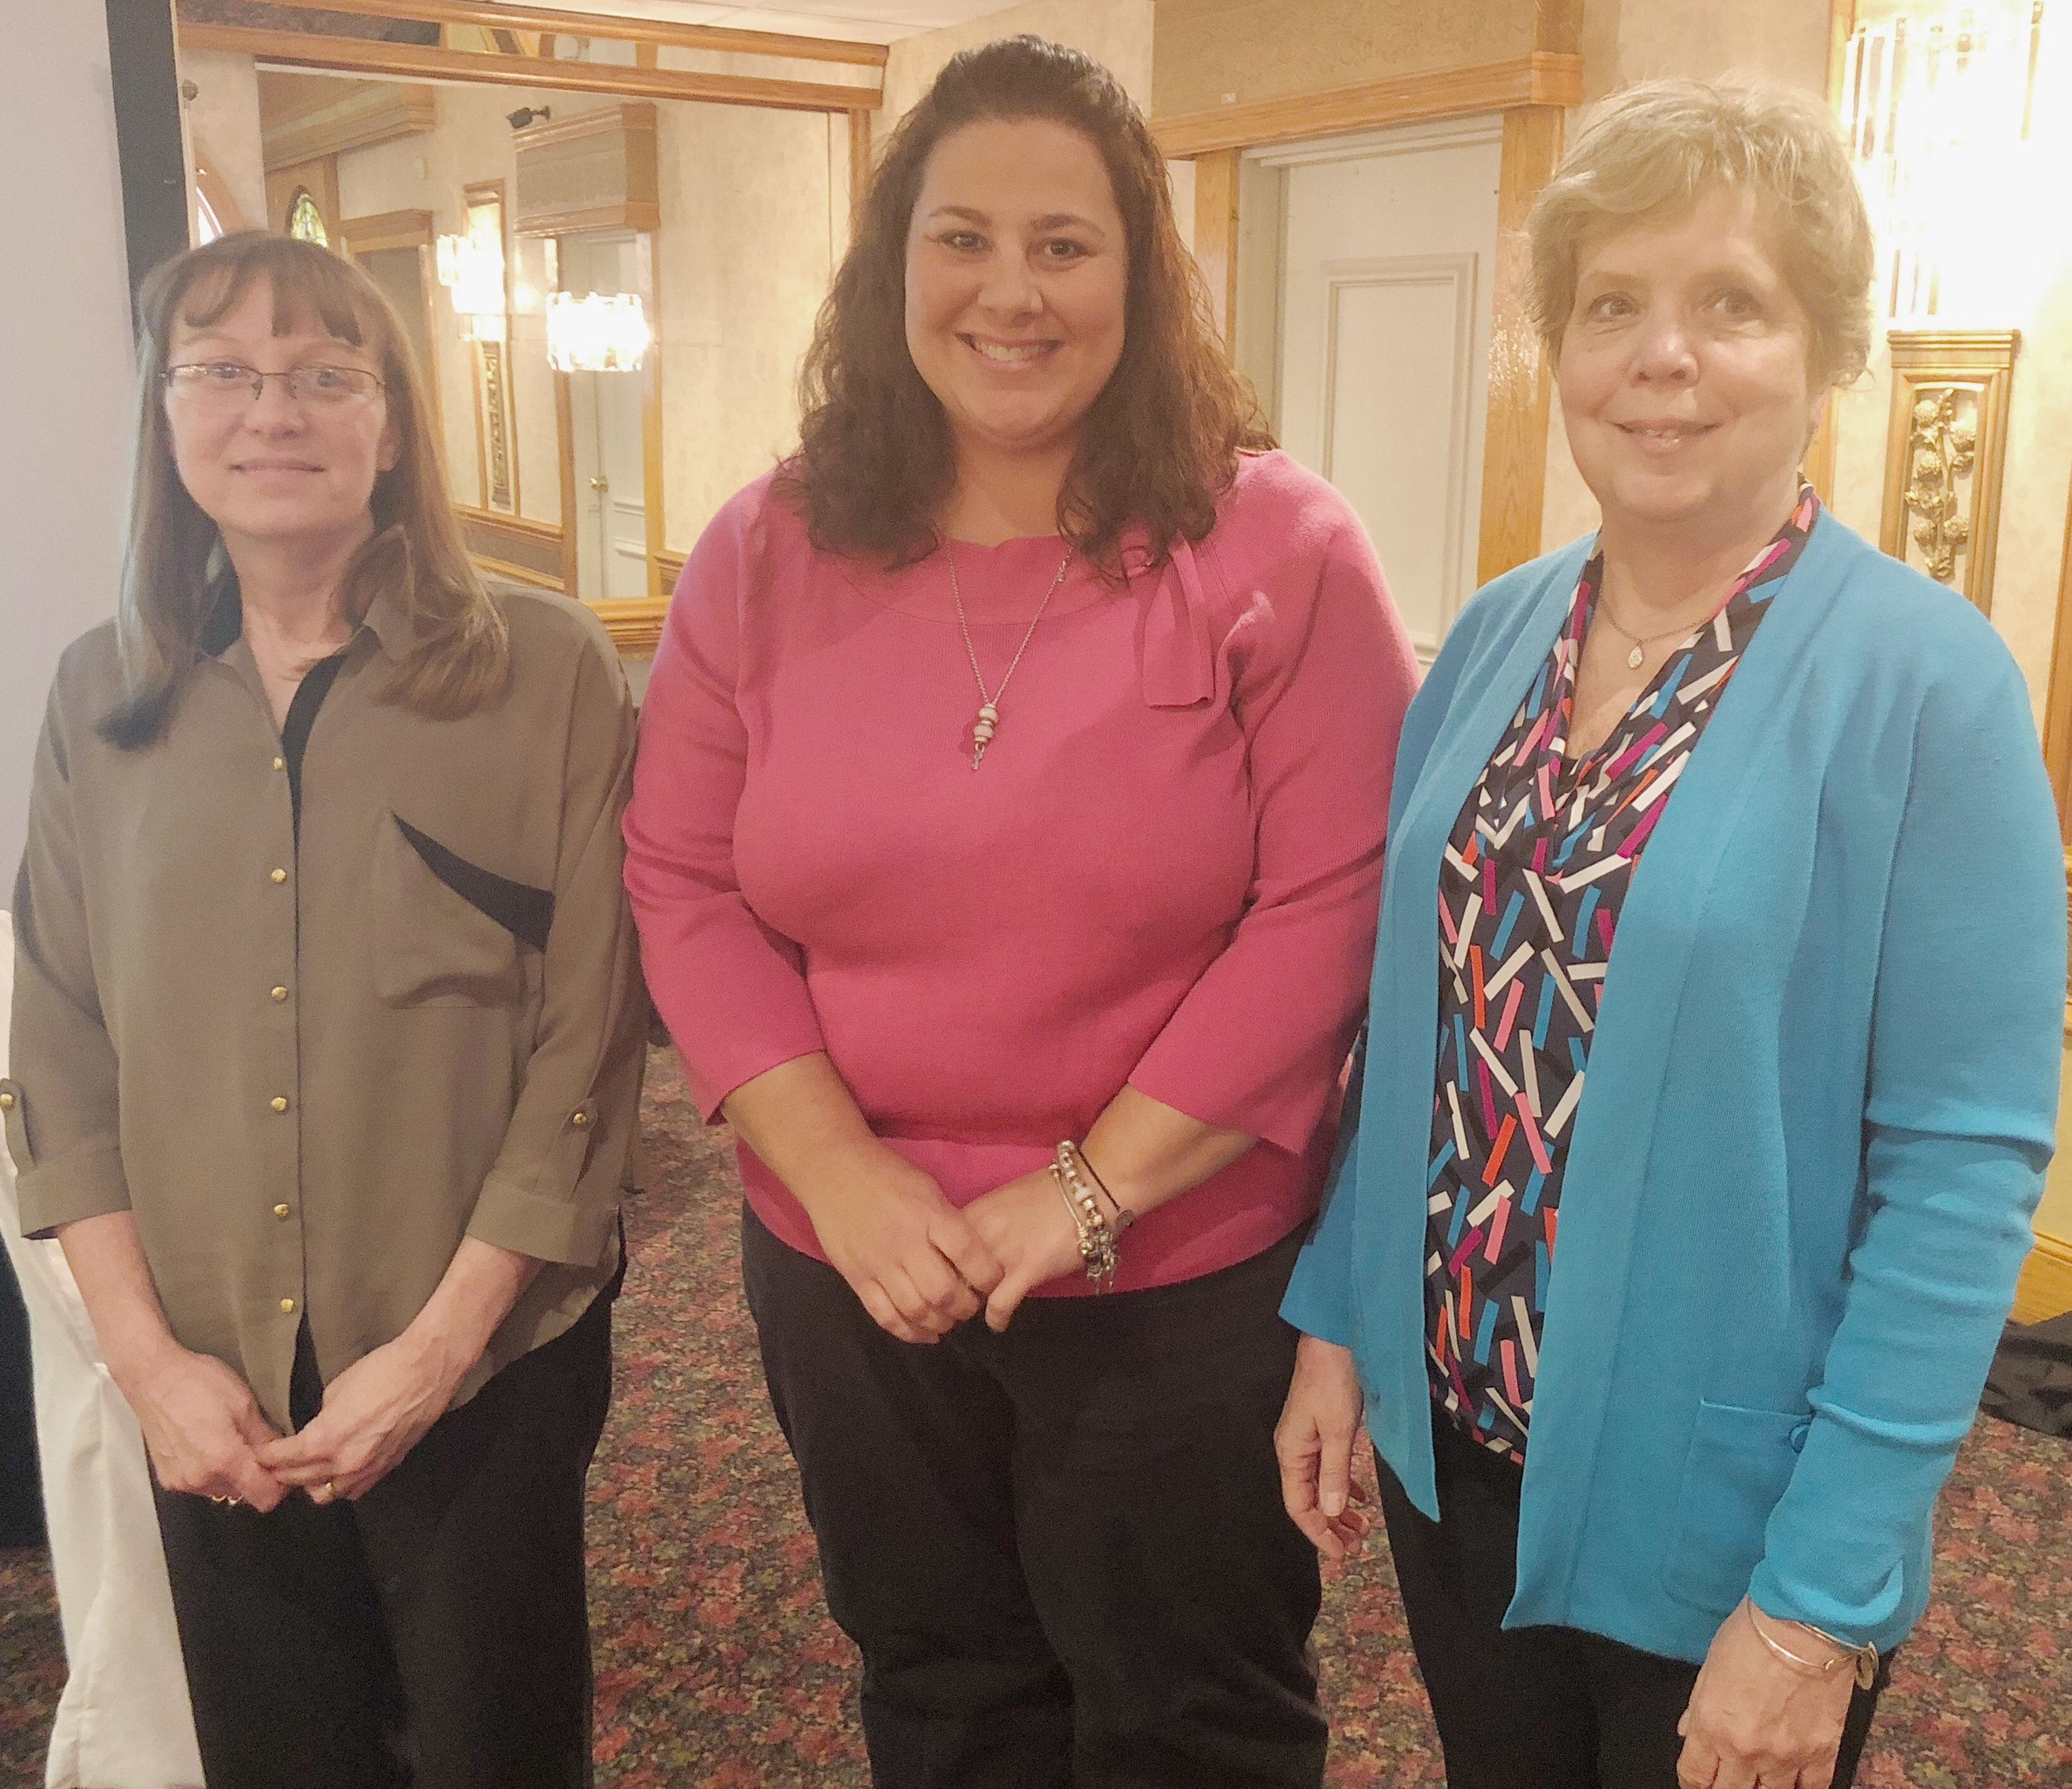 Pictured L-R:  Dee Pitts, Tina Engelhart and Pat Galioto